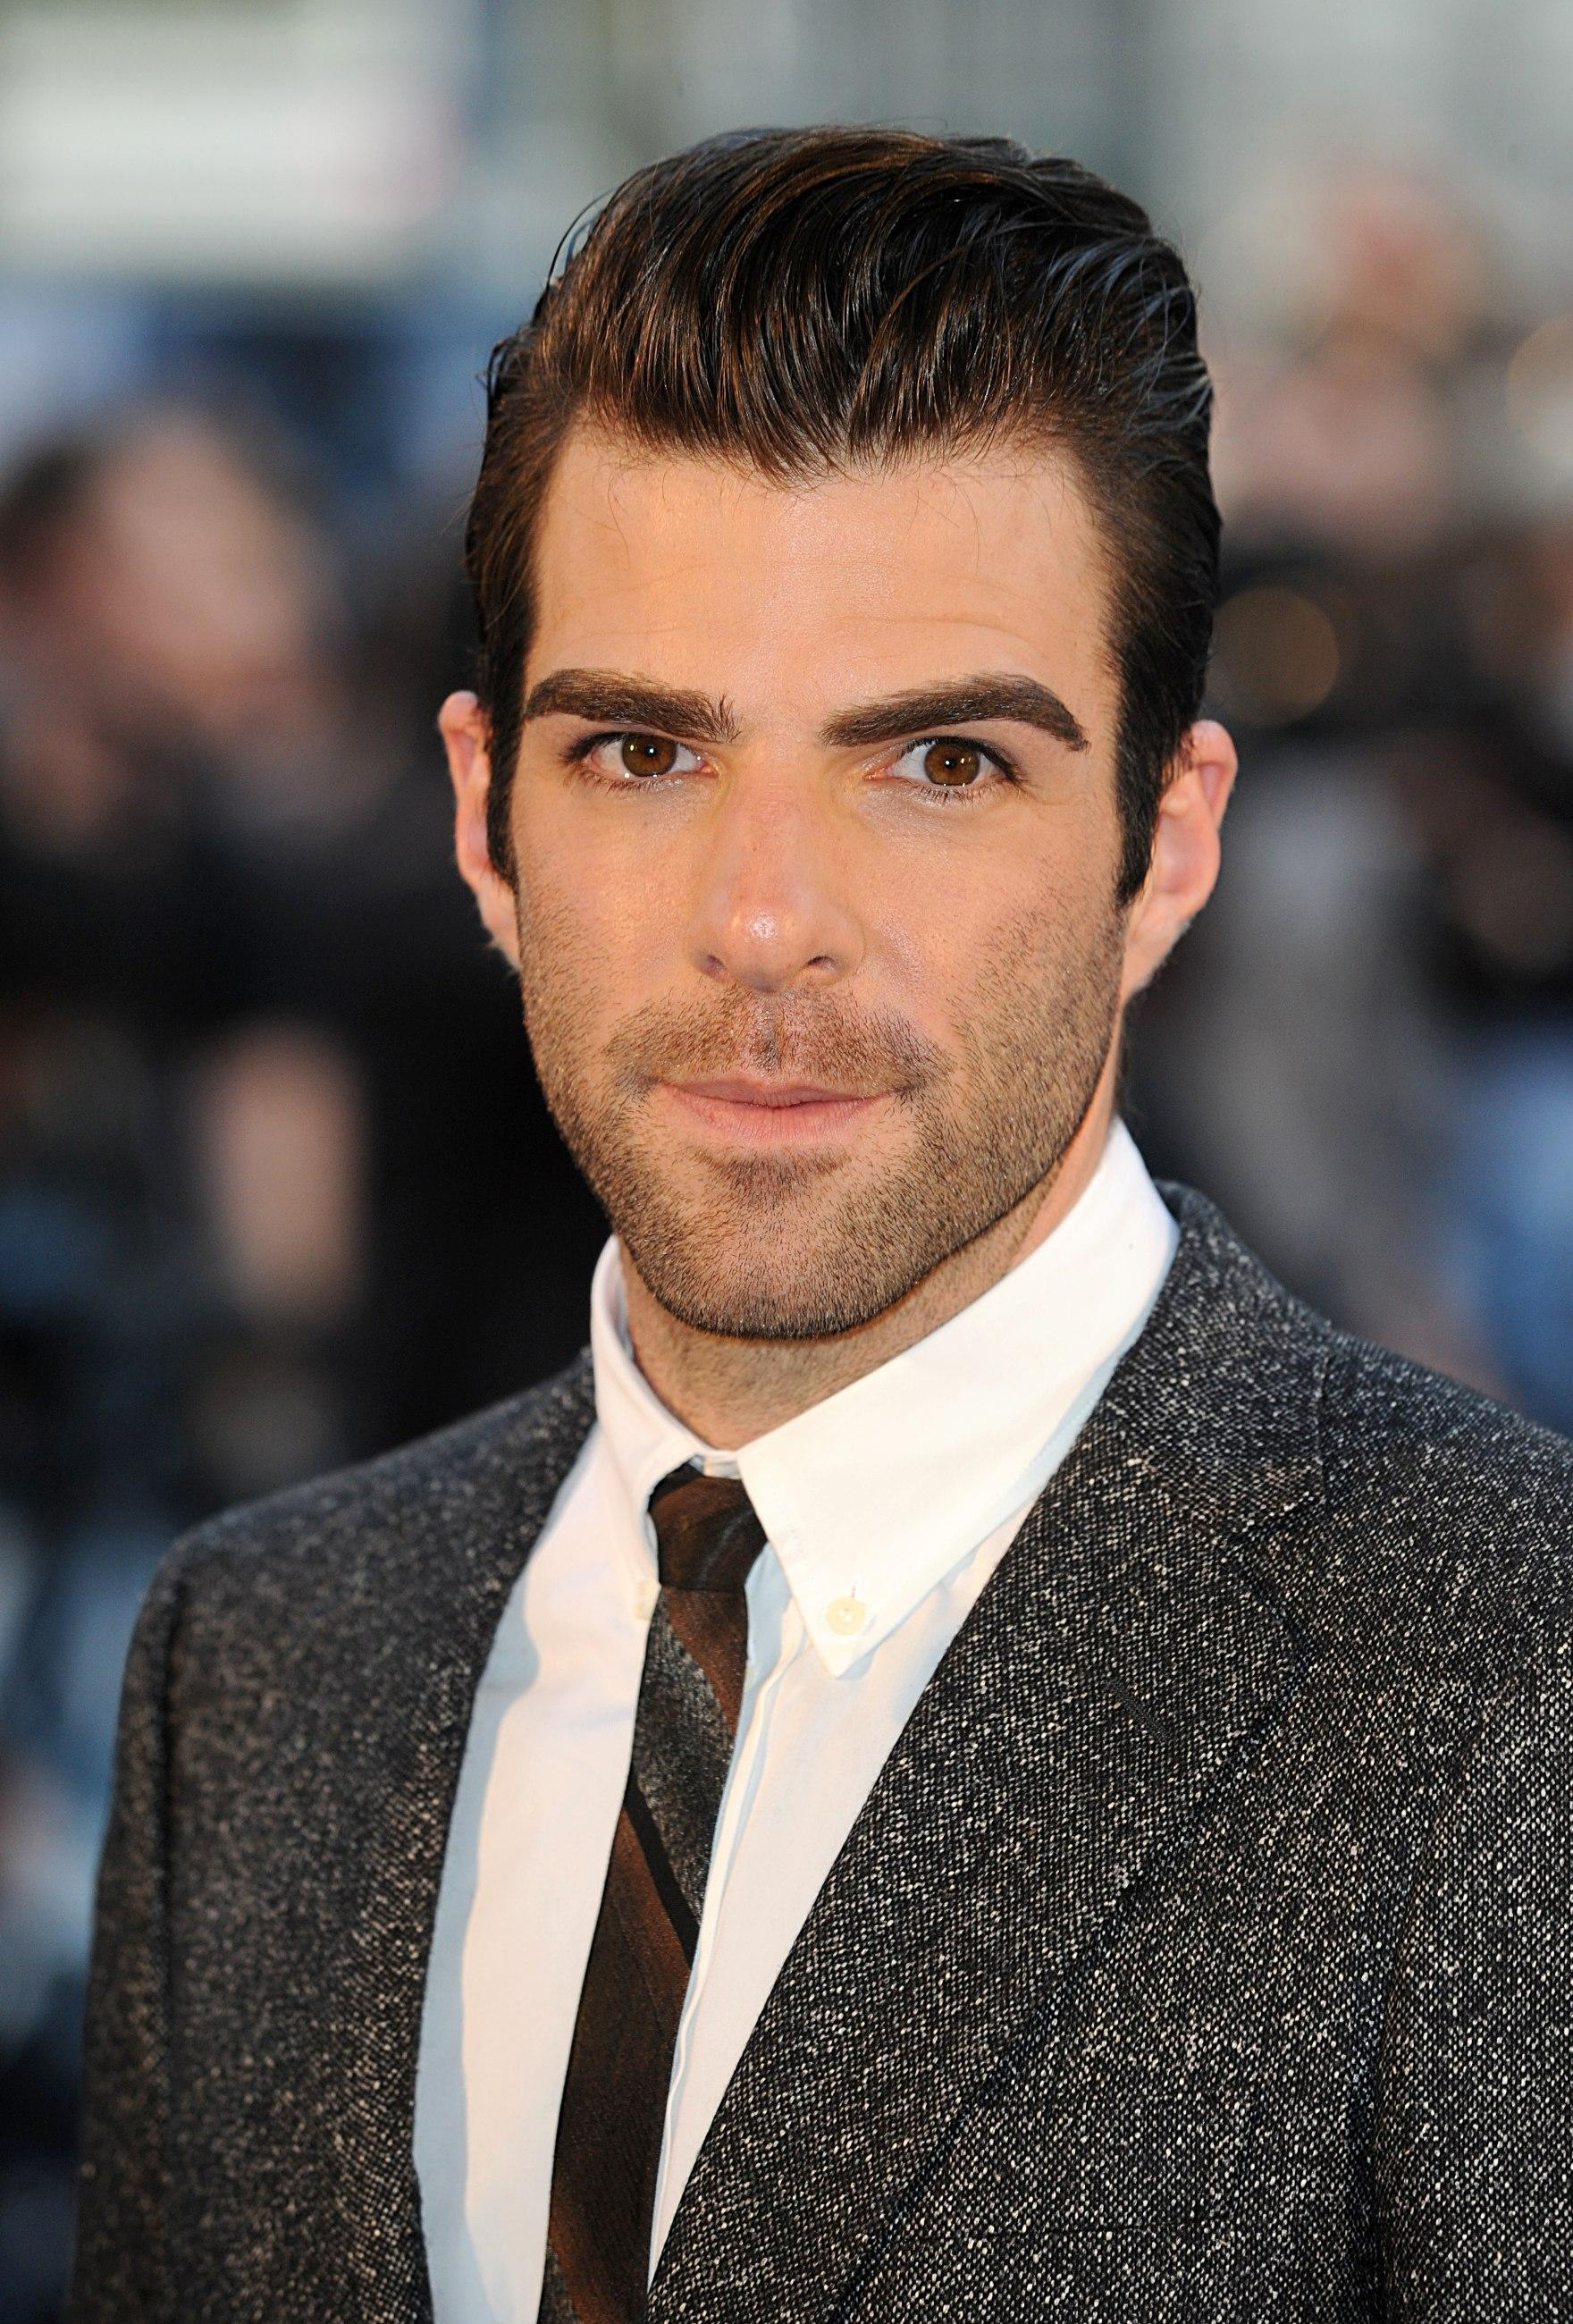 zachary quinto 2017zachary quinto miles mcmillan, zachary quinto gif, zachary quinto vk, zachary quinto american horror story, zachary quinto charmed, zachary quinto 2017, zachary quinto ahs, zachary quinto young, zachary quinto screencaps, zachary quinto brother, zachary quinto png, zachary quinto star trek beyond, zachary quinto and leonard nimoy, zachary quinto wiki, zachary quinto tattoo, zachary quinto imdb, zachary quinto favorite books, zachary quinto missy elliott, zachary quinto film, zachary quinto address